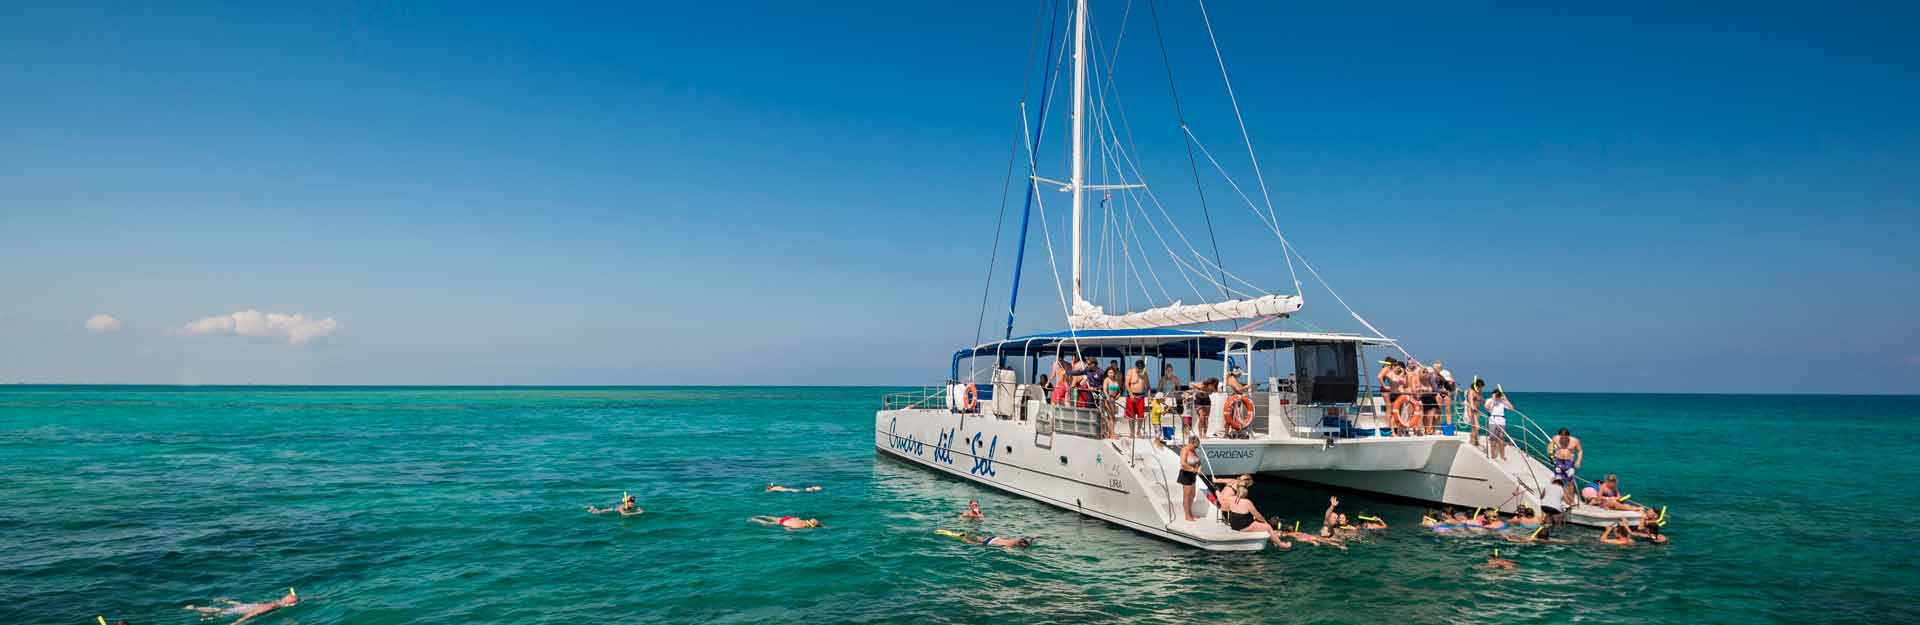 Catamaran, Diving, Beaches, Excursion, Snorkeling, Nature, Coral Reef.